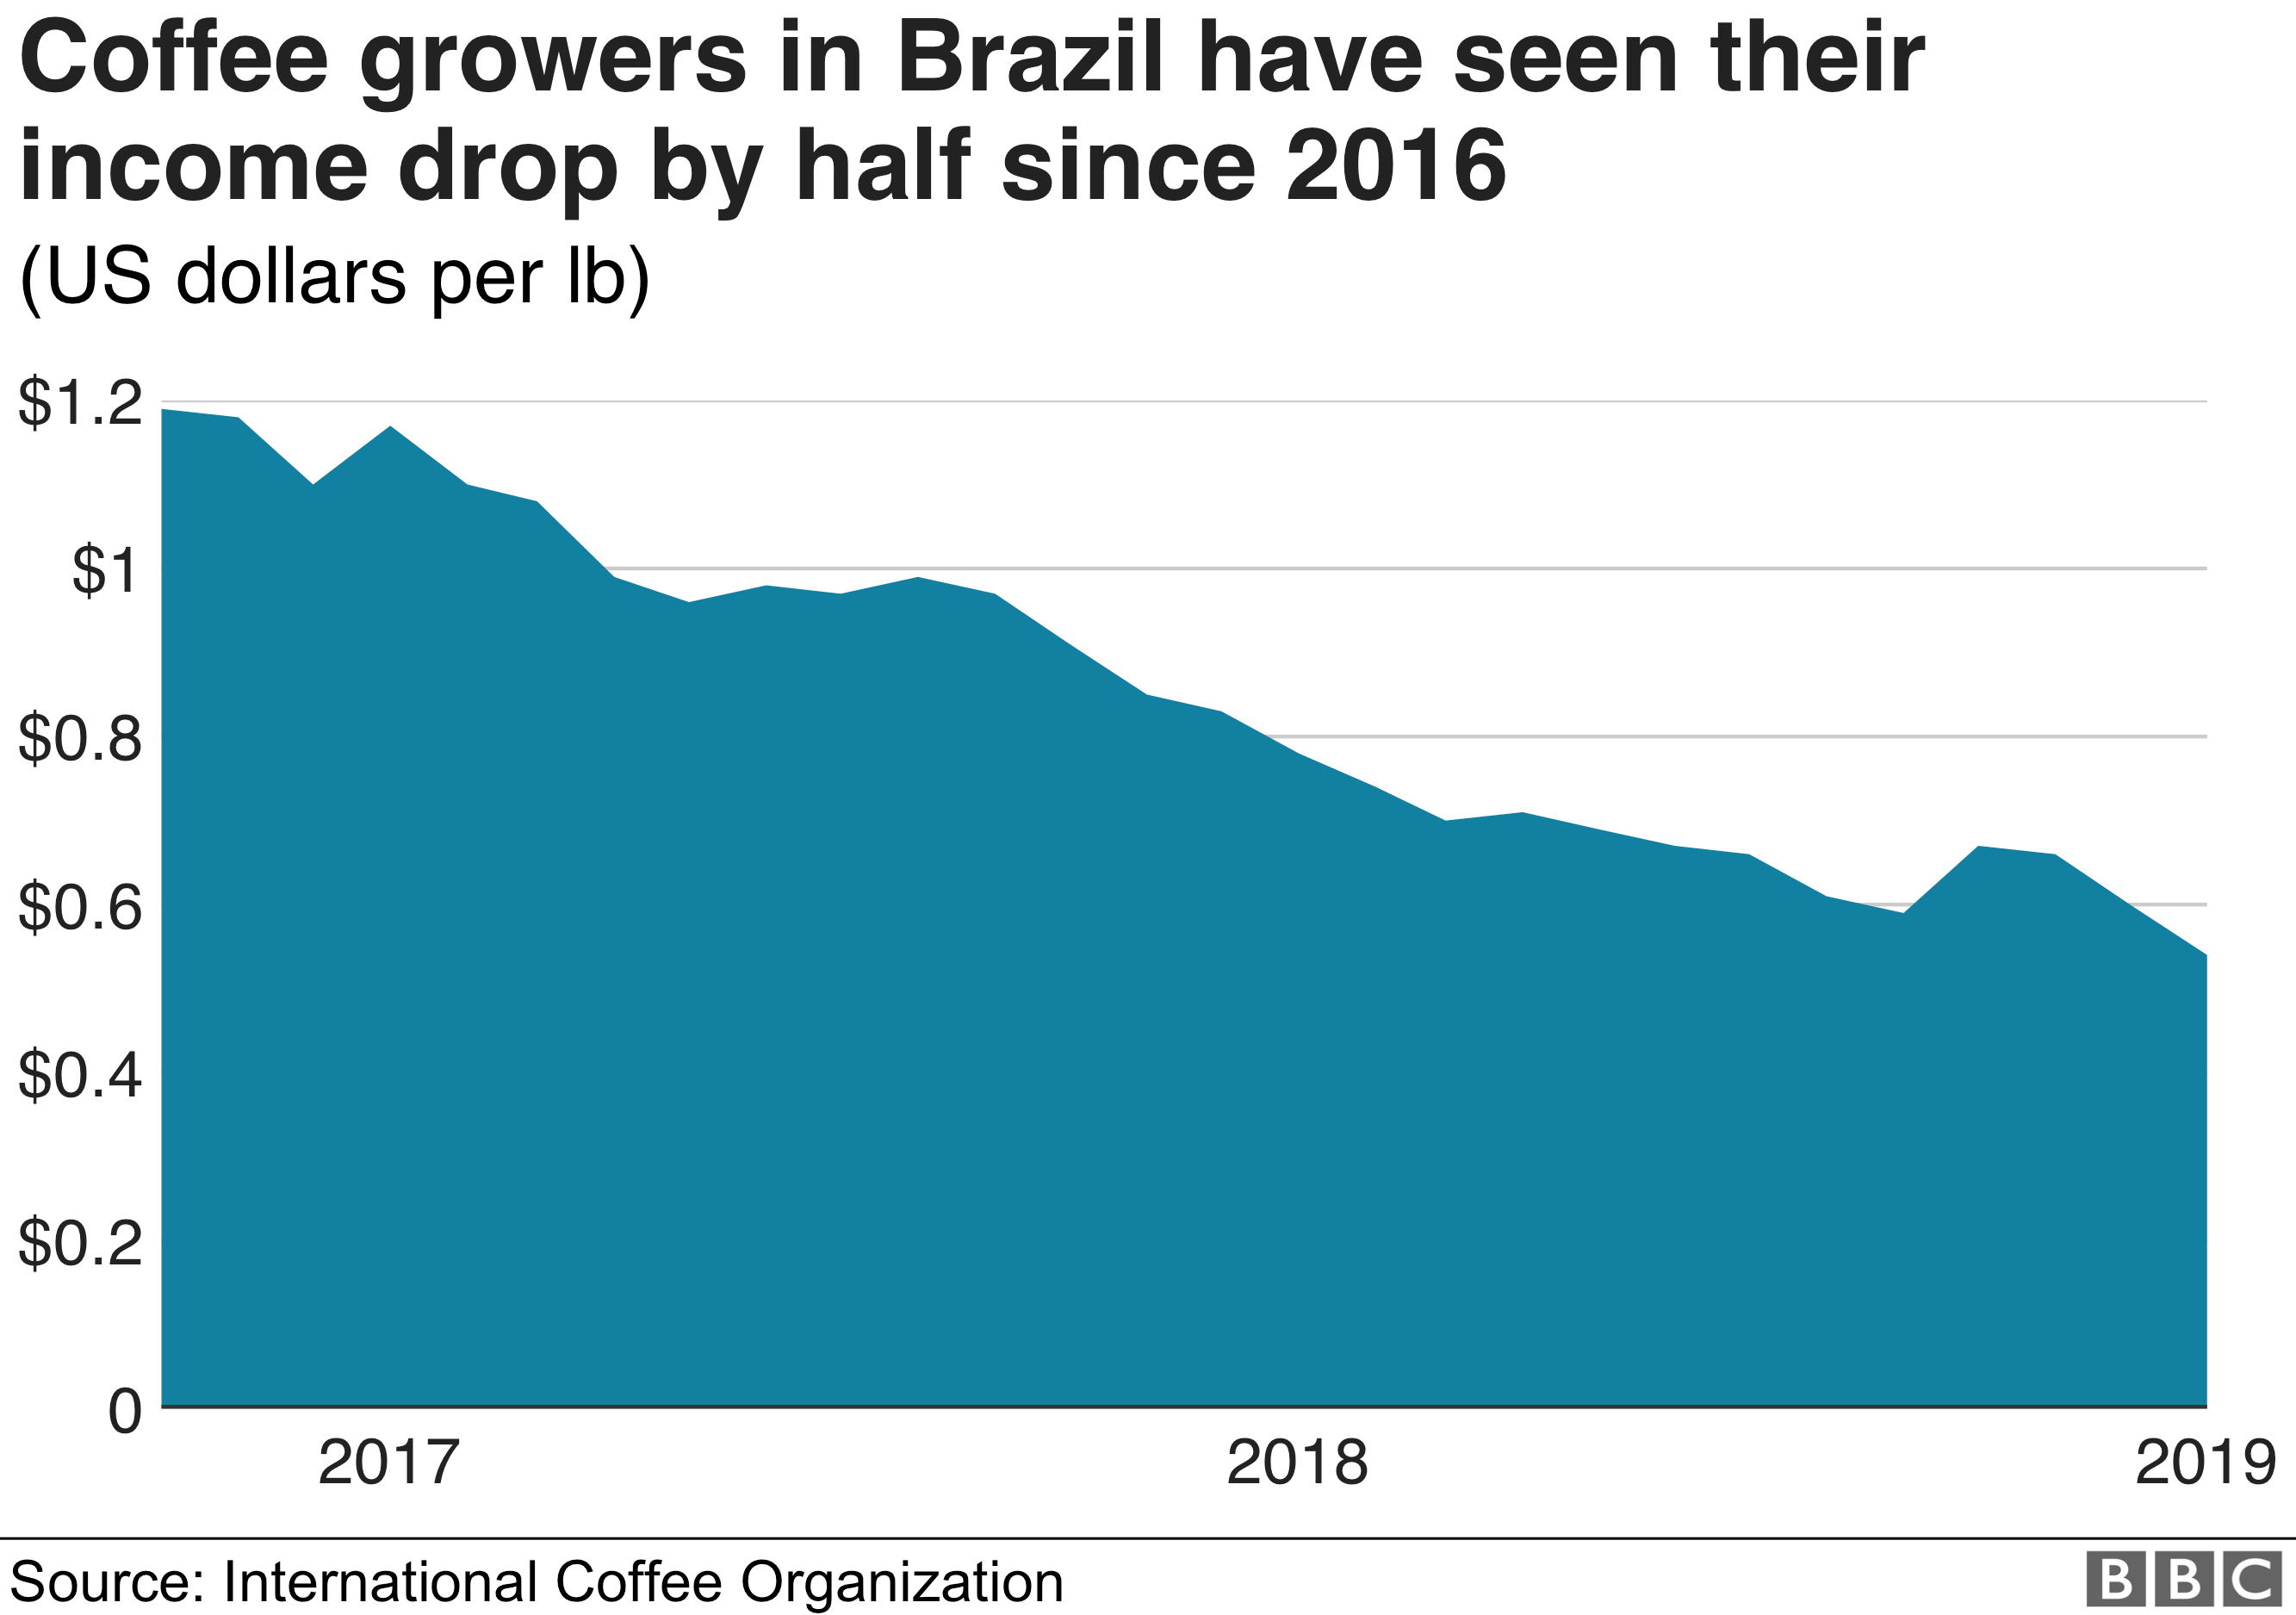 Coffee prices declining for producers from 2017 to the start of 2019